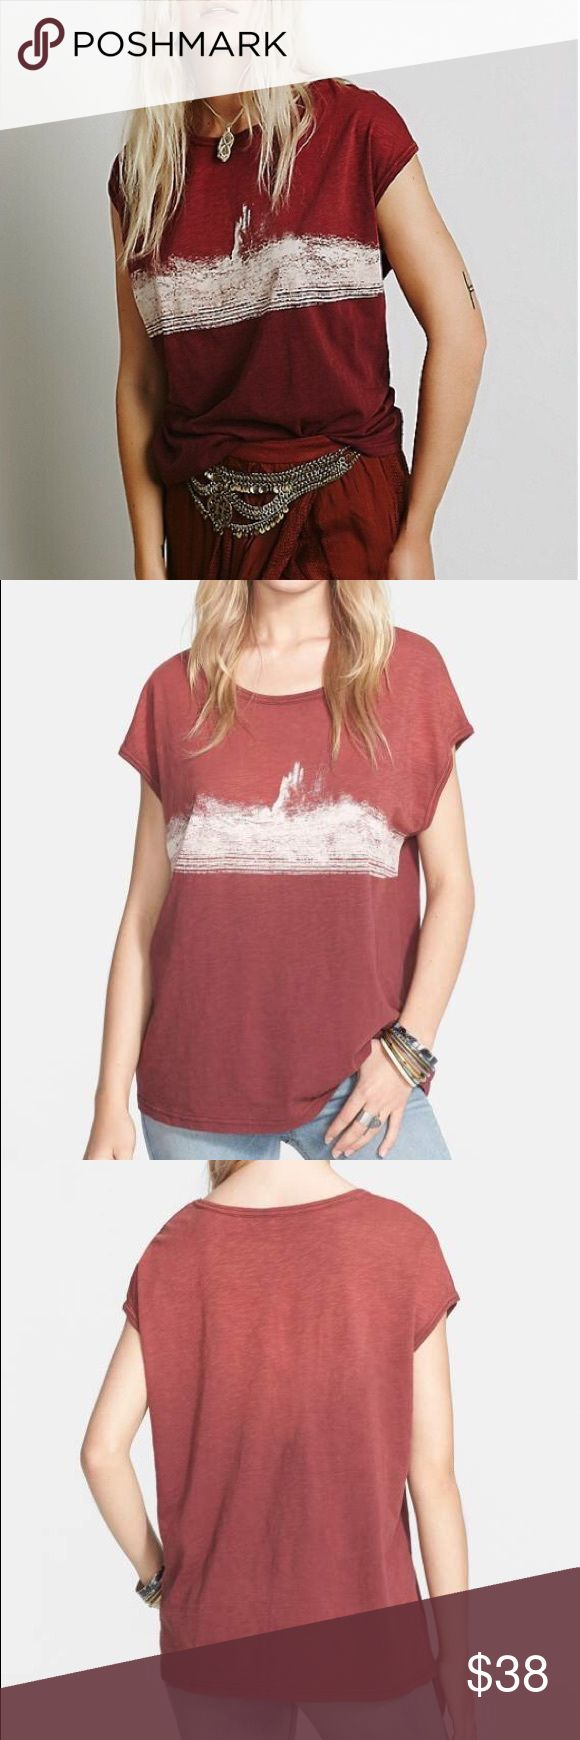 "Free People Thunder Moon Abstract Graphic Tee FP Free People We the Free ""Thunder Moon"" graphic tee with abstract mountain print. Burnt orange ombré color. Size medium, looks great oversized on small too. Excellent condition. Sold out on FP. Make me an offer! Free People Tops Tees - Short Sleeve"